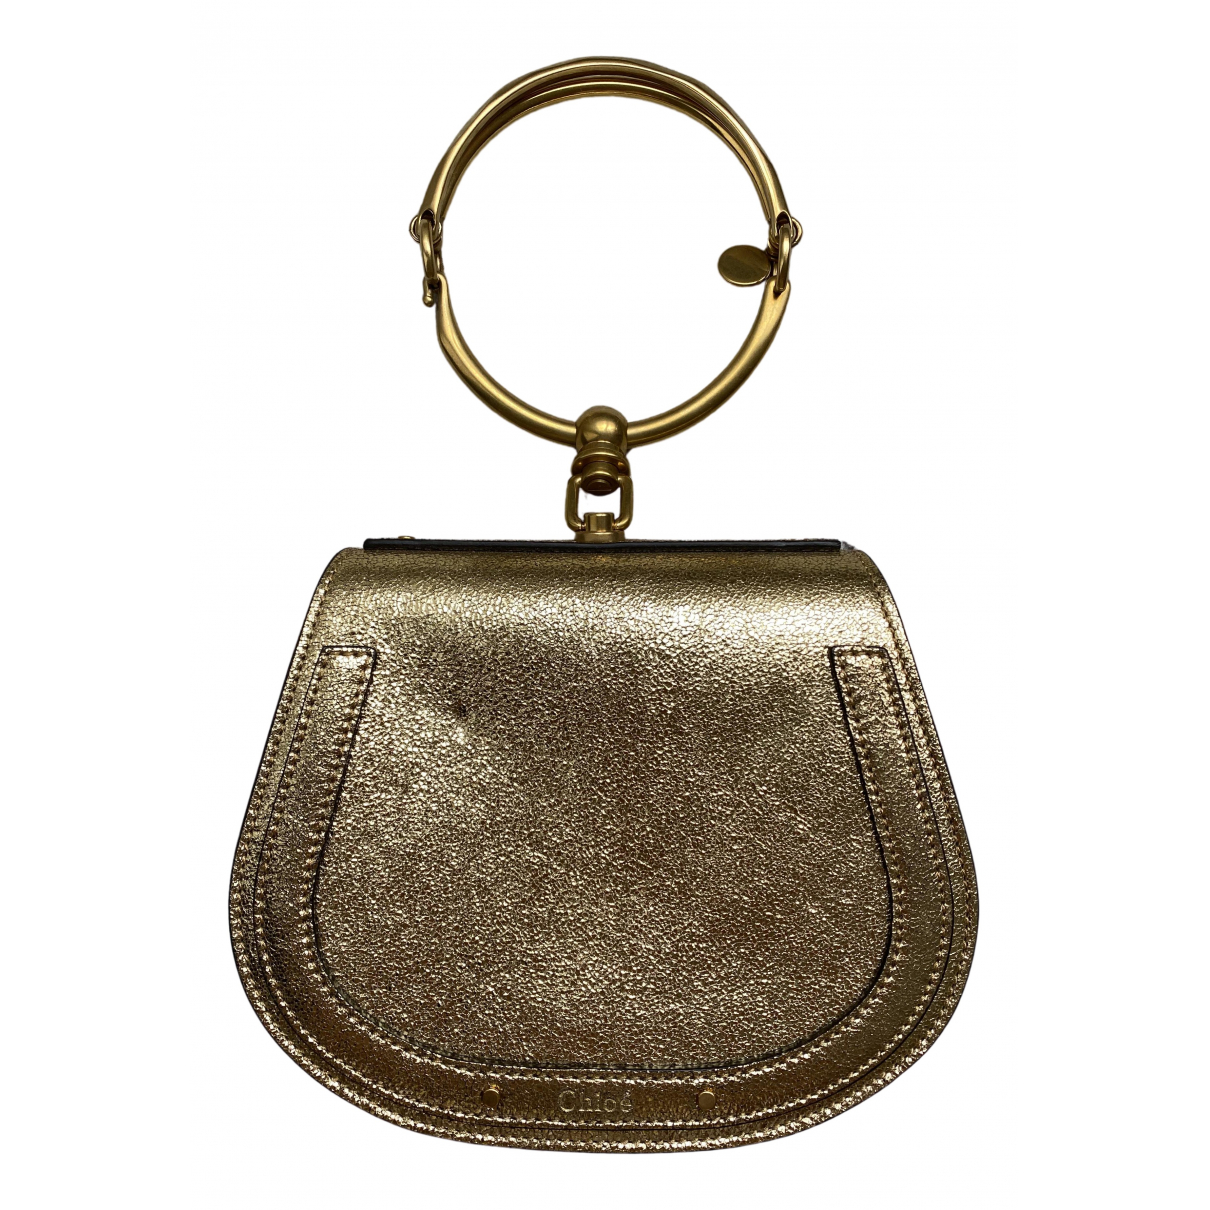 Chloe Bracelet Nile Clutch in  Gold Leder